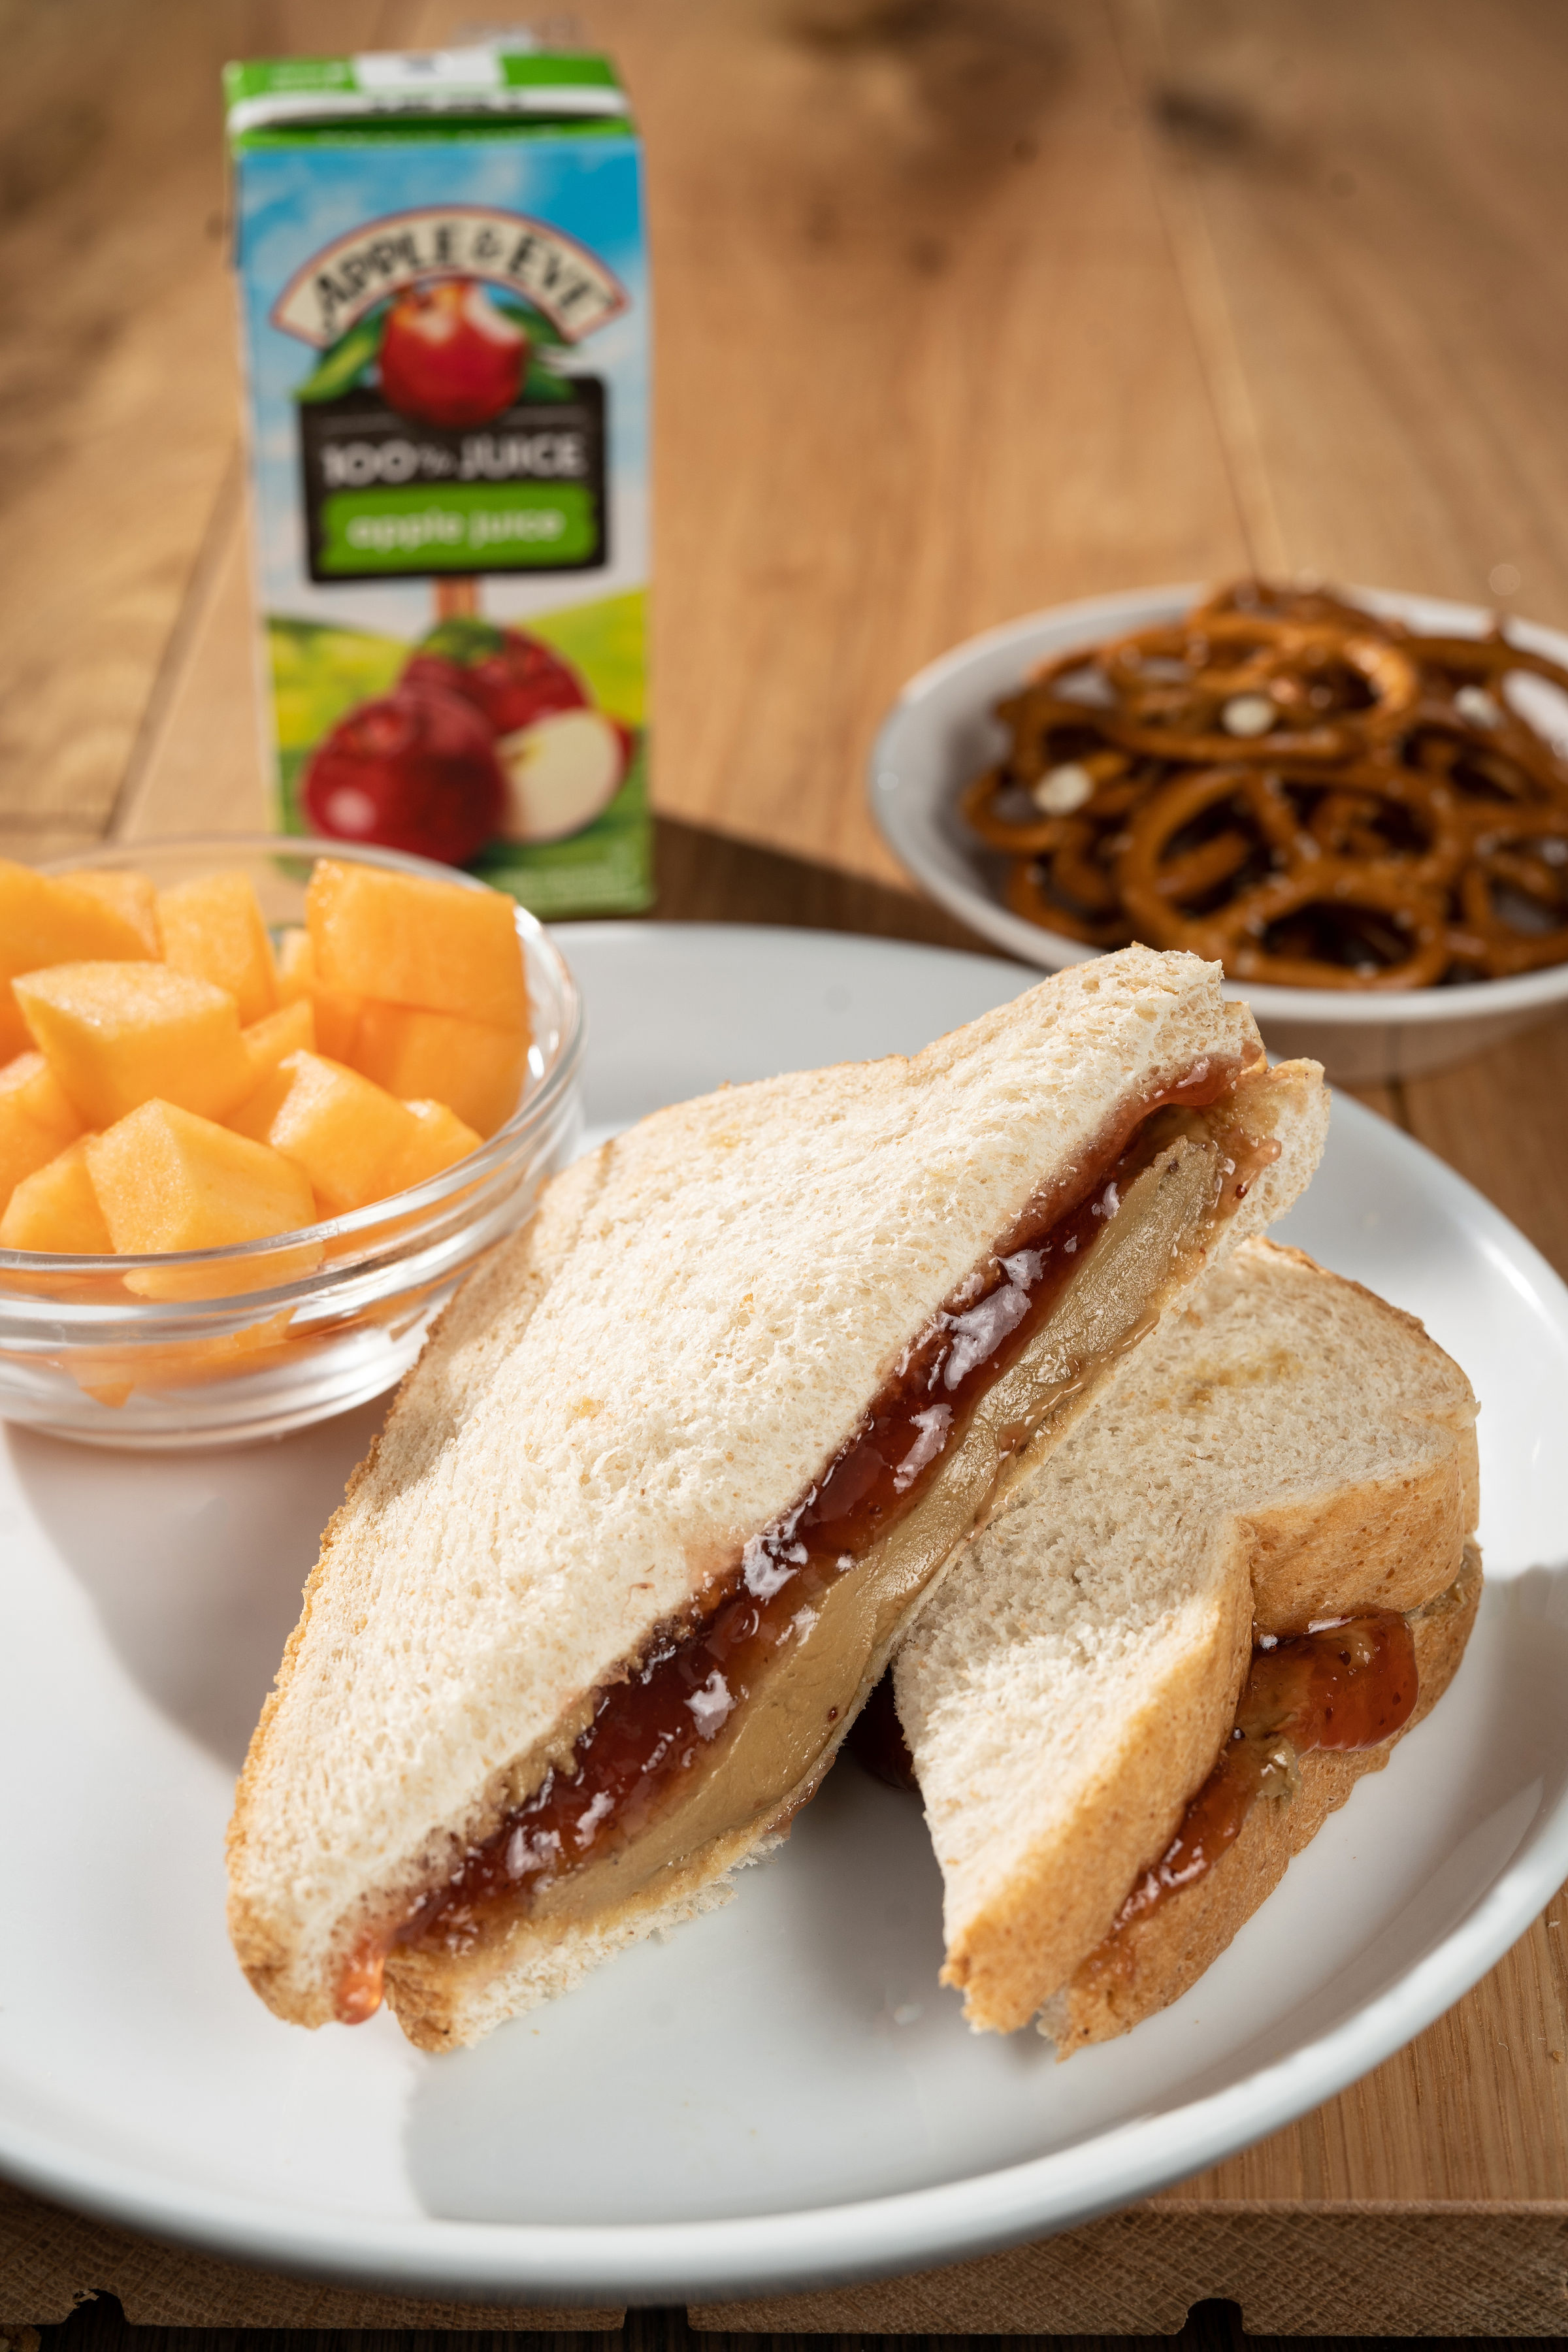 Sunflower Butter & Jelly Sandwich